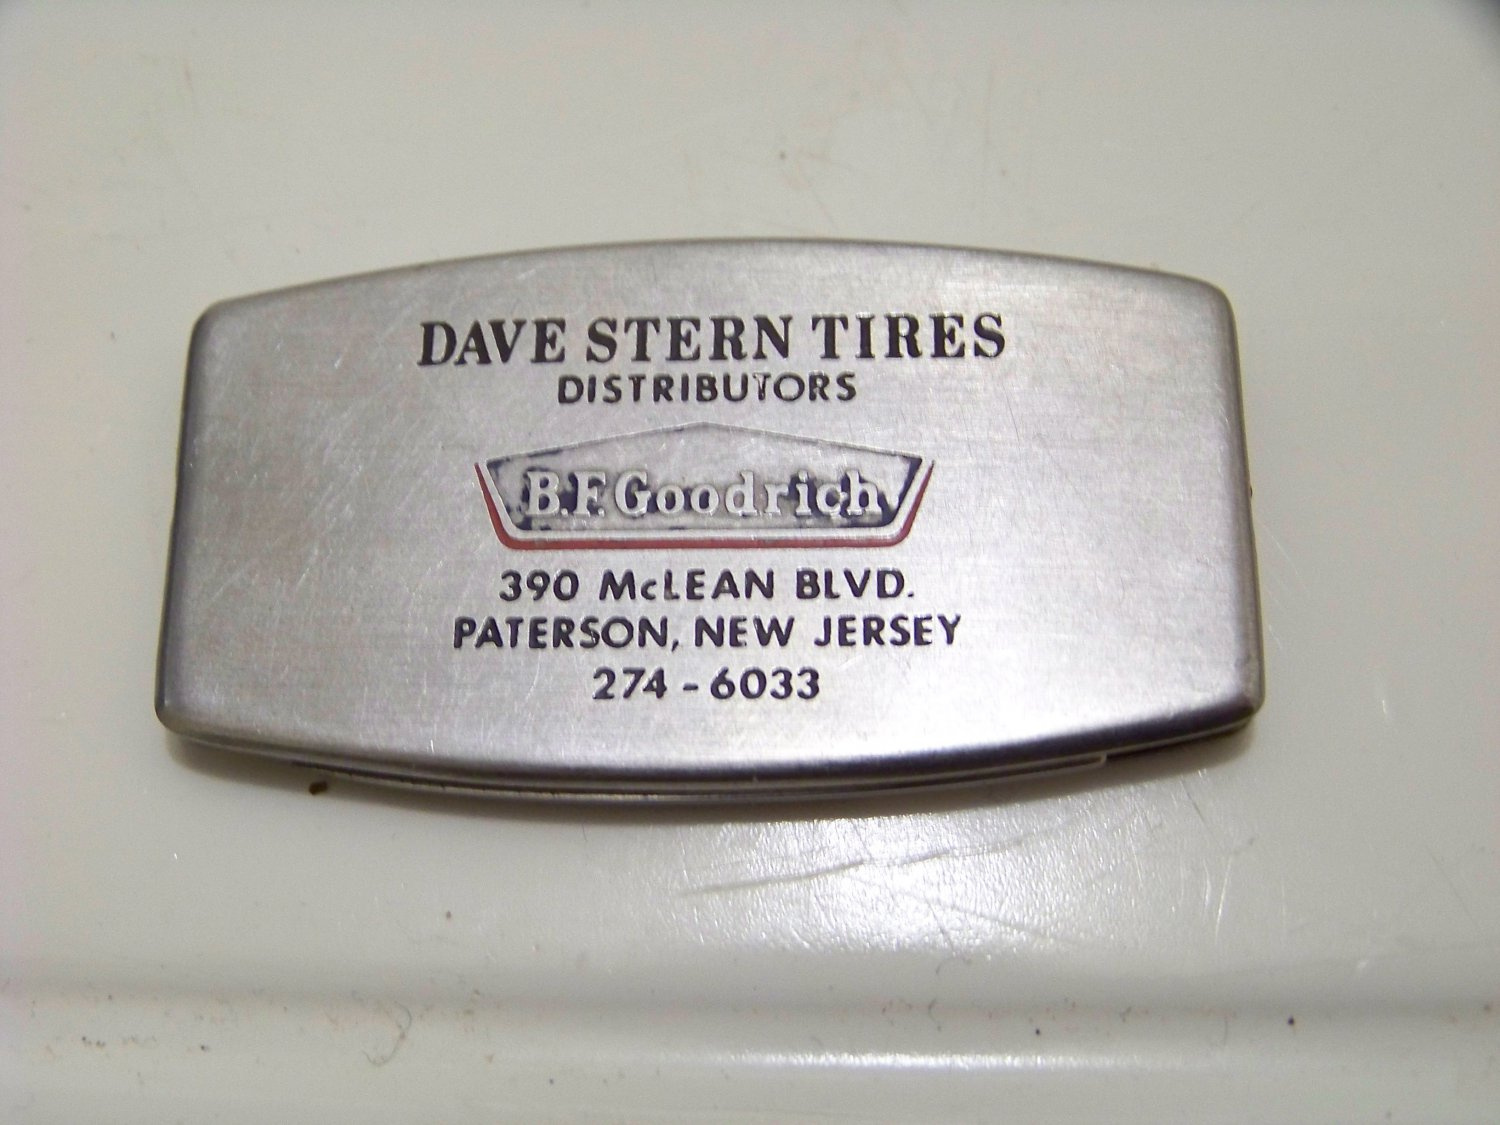 Dave Stern tires distributor knife file advertising B.F. Goodrich made by Zippo